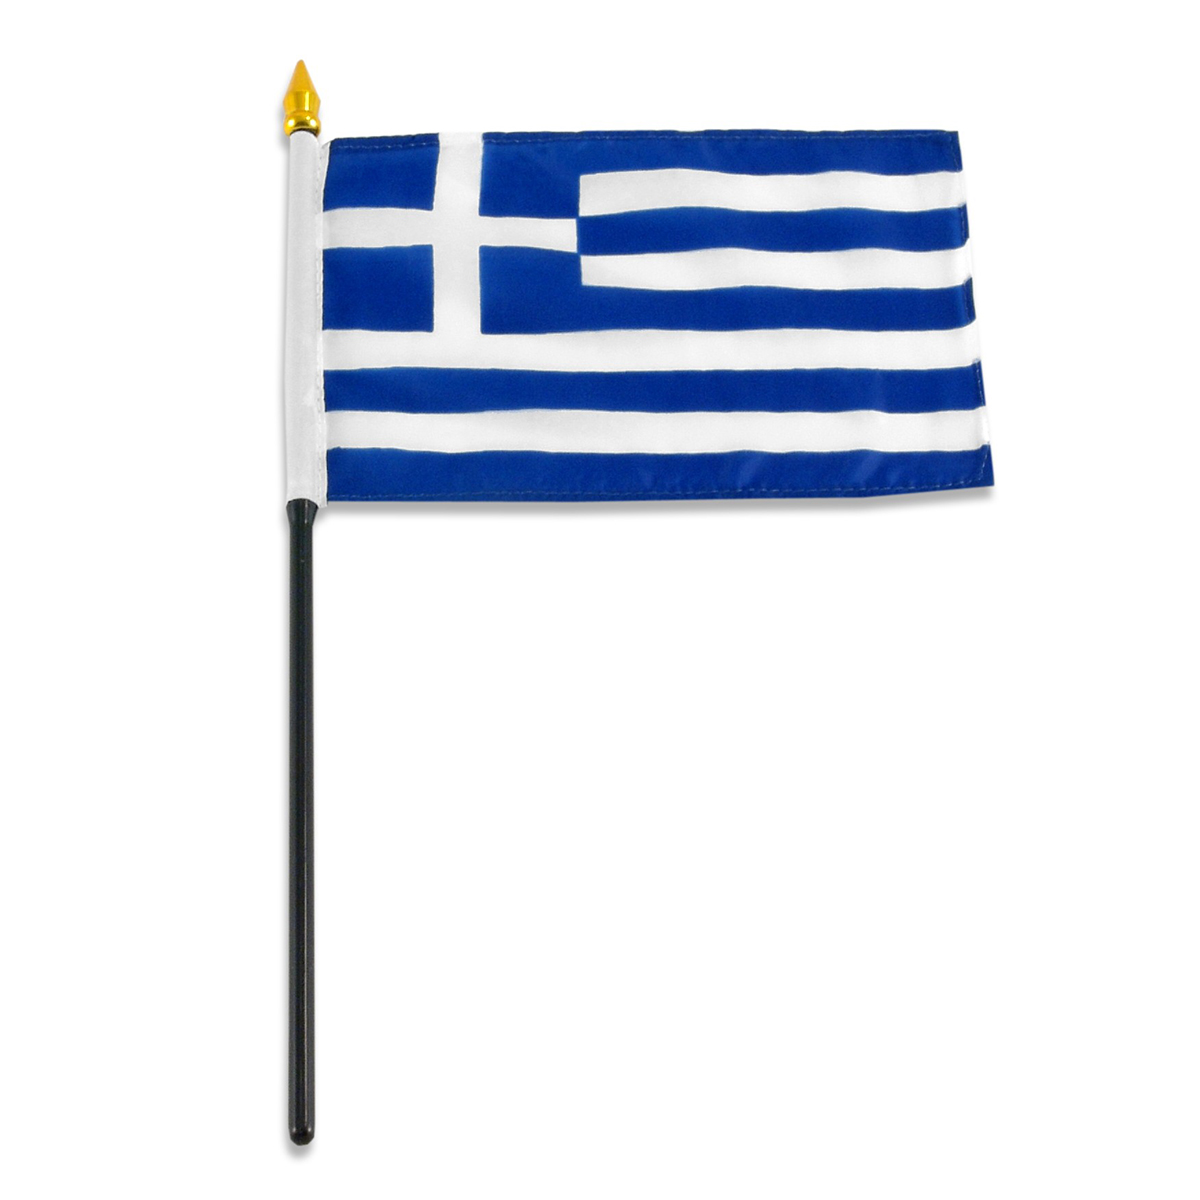 greek flag template - 4x6 inch greek flag